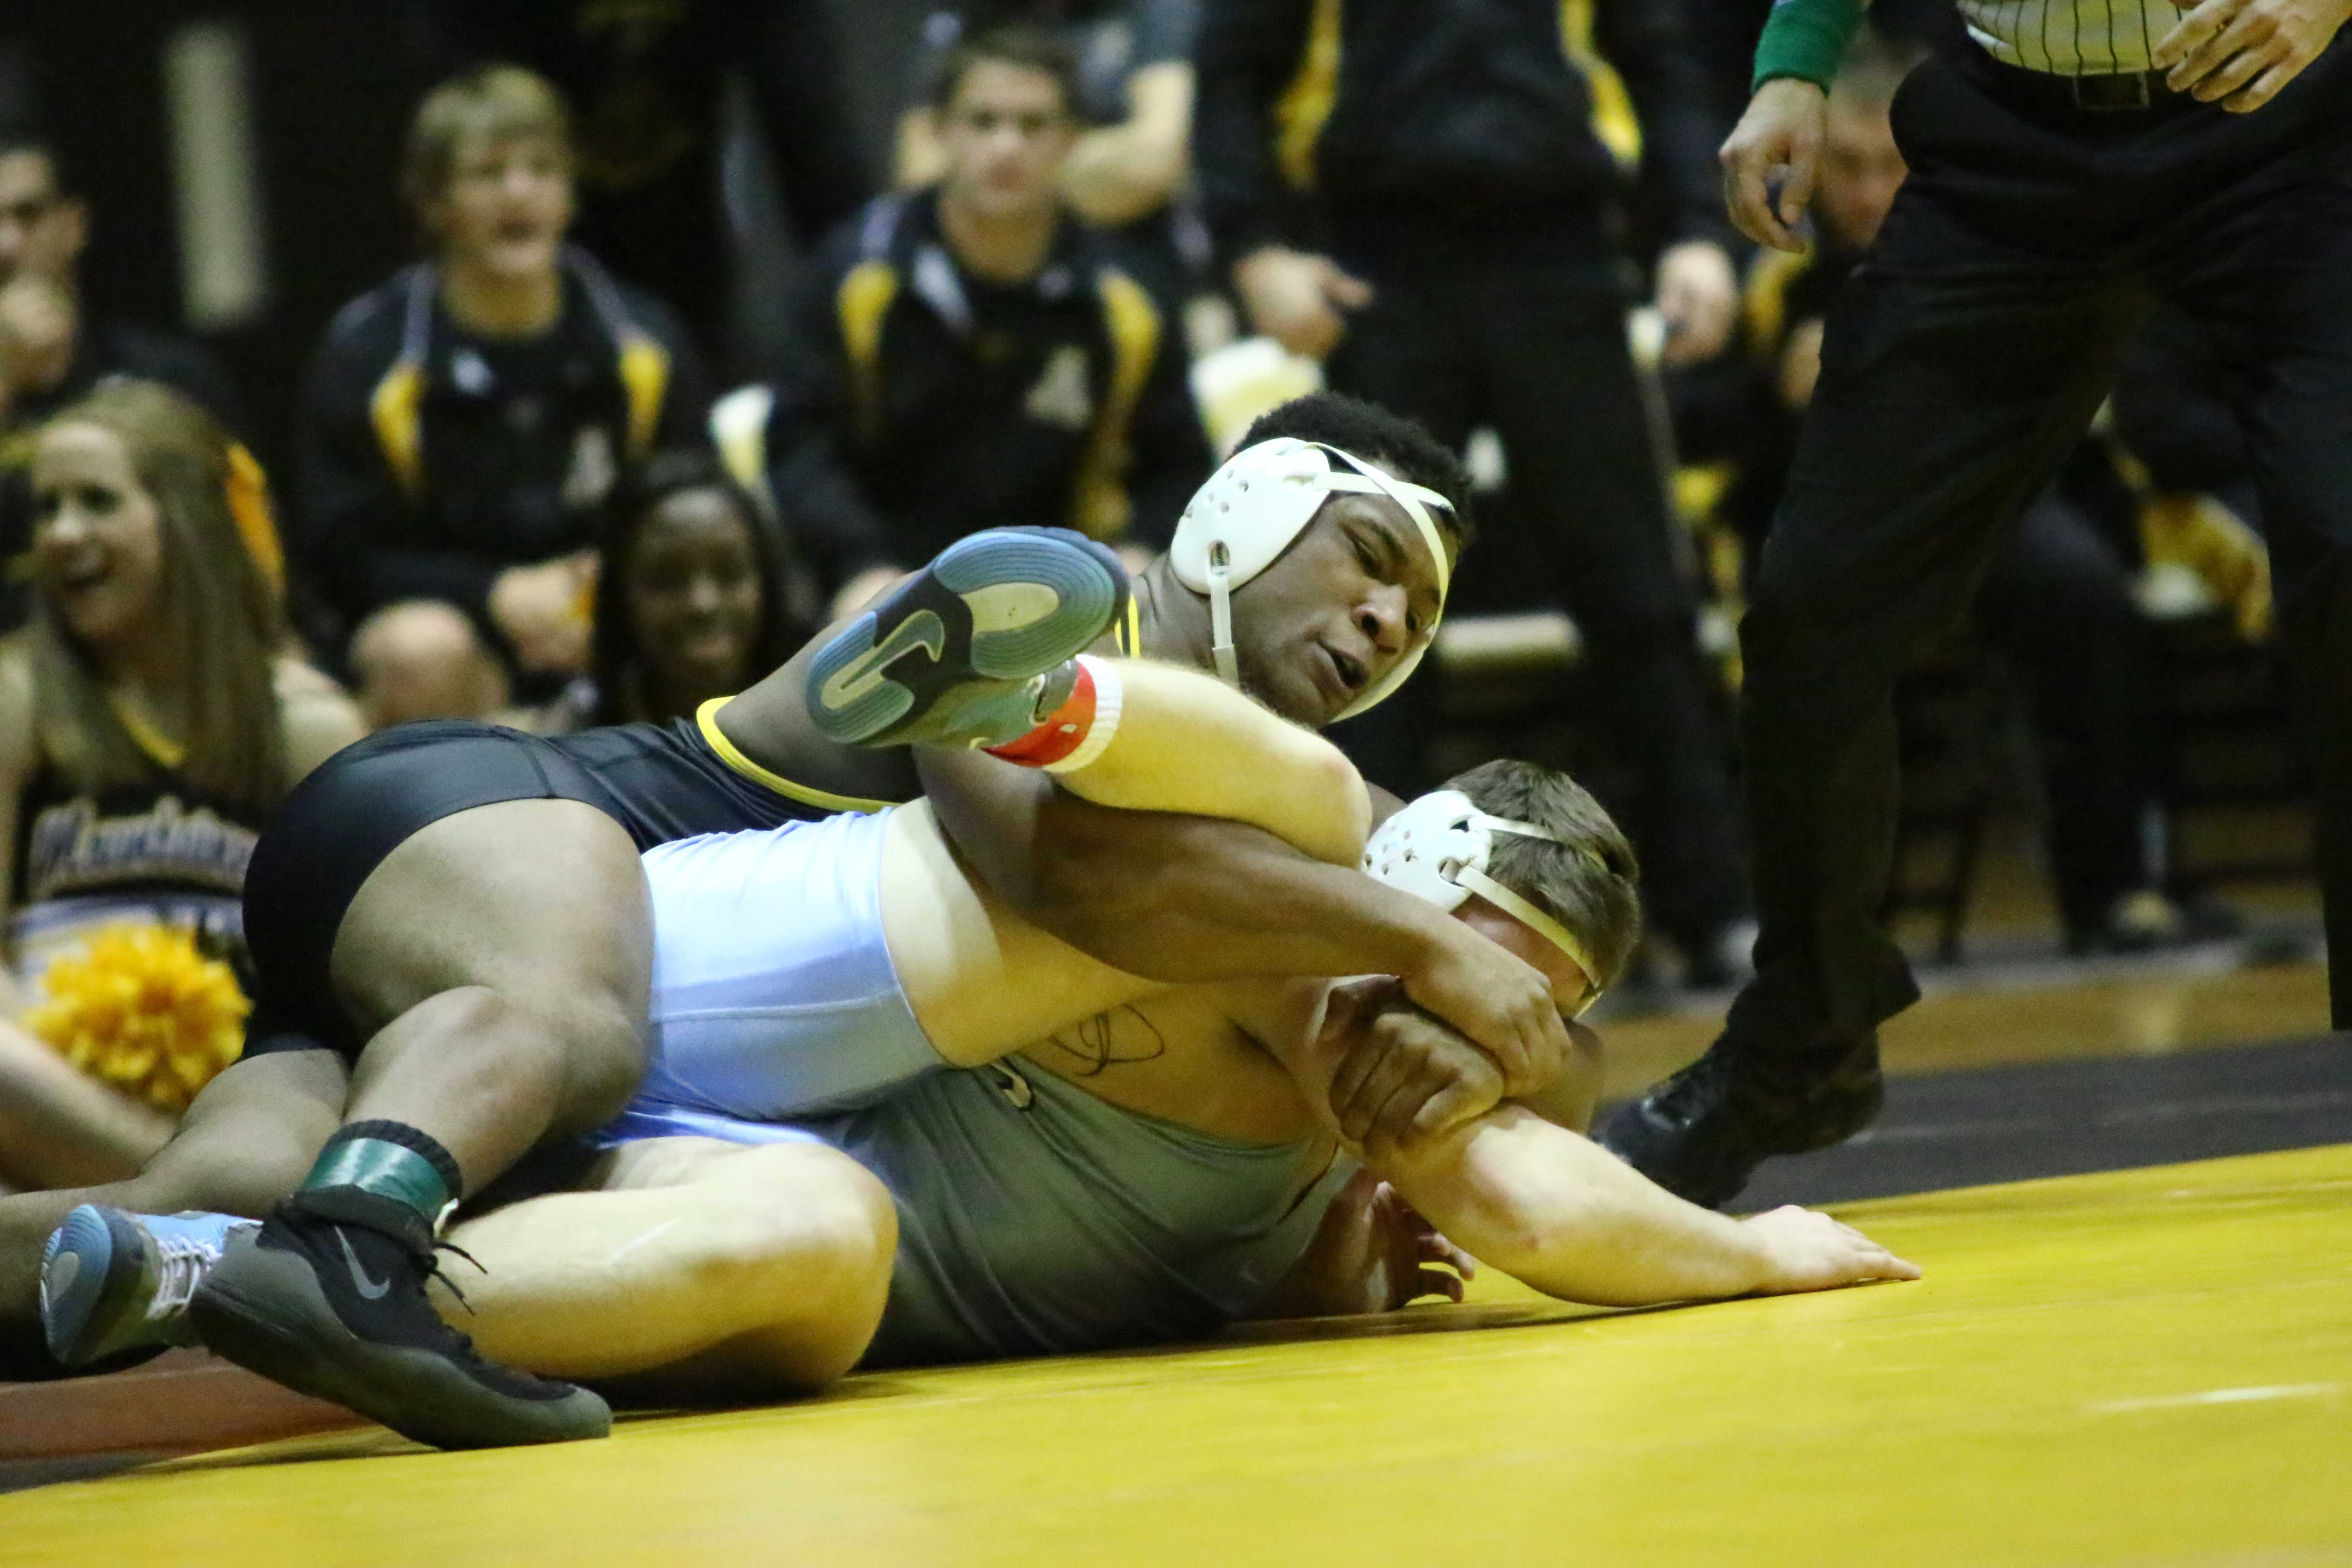 Denzel Dejournette won the final match to help the Mountaineers defeat the Tarheels Photo courtesy: App State Athletics/ Rob Moore